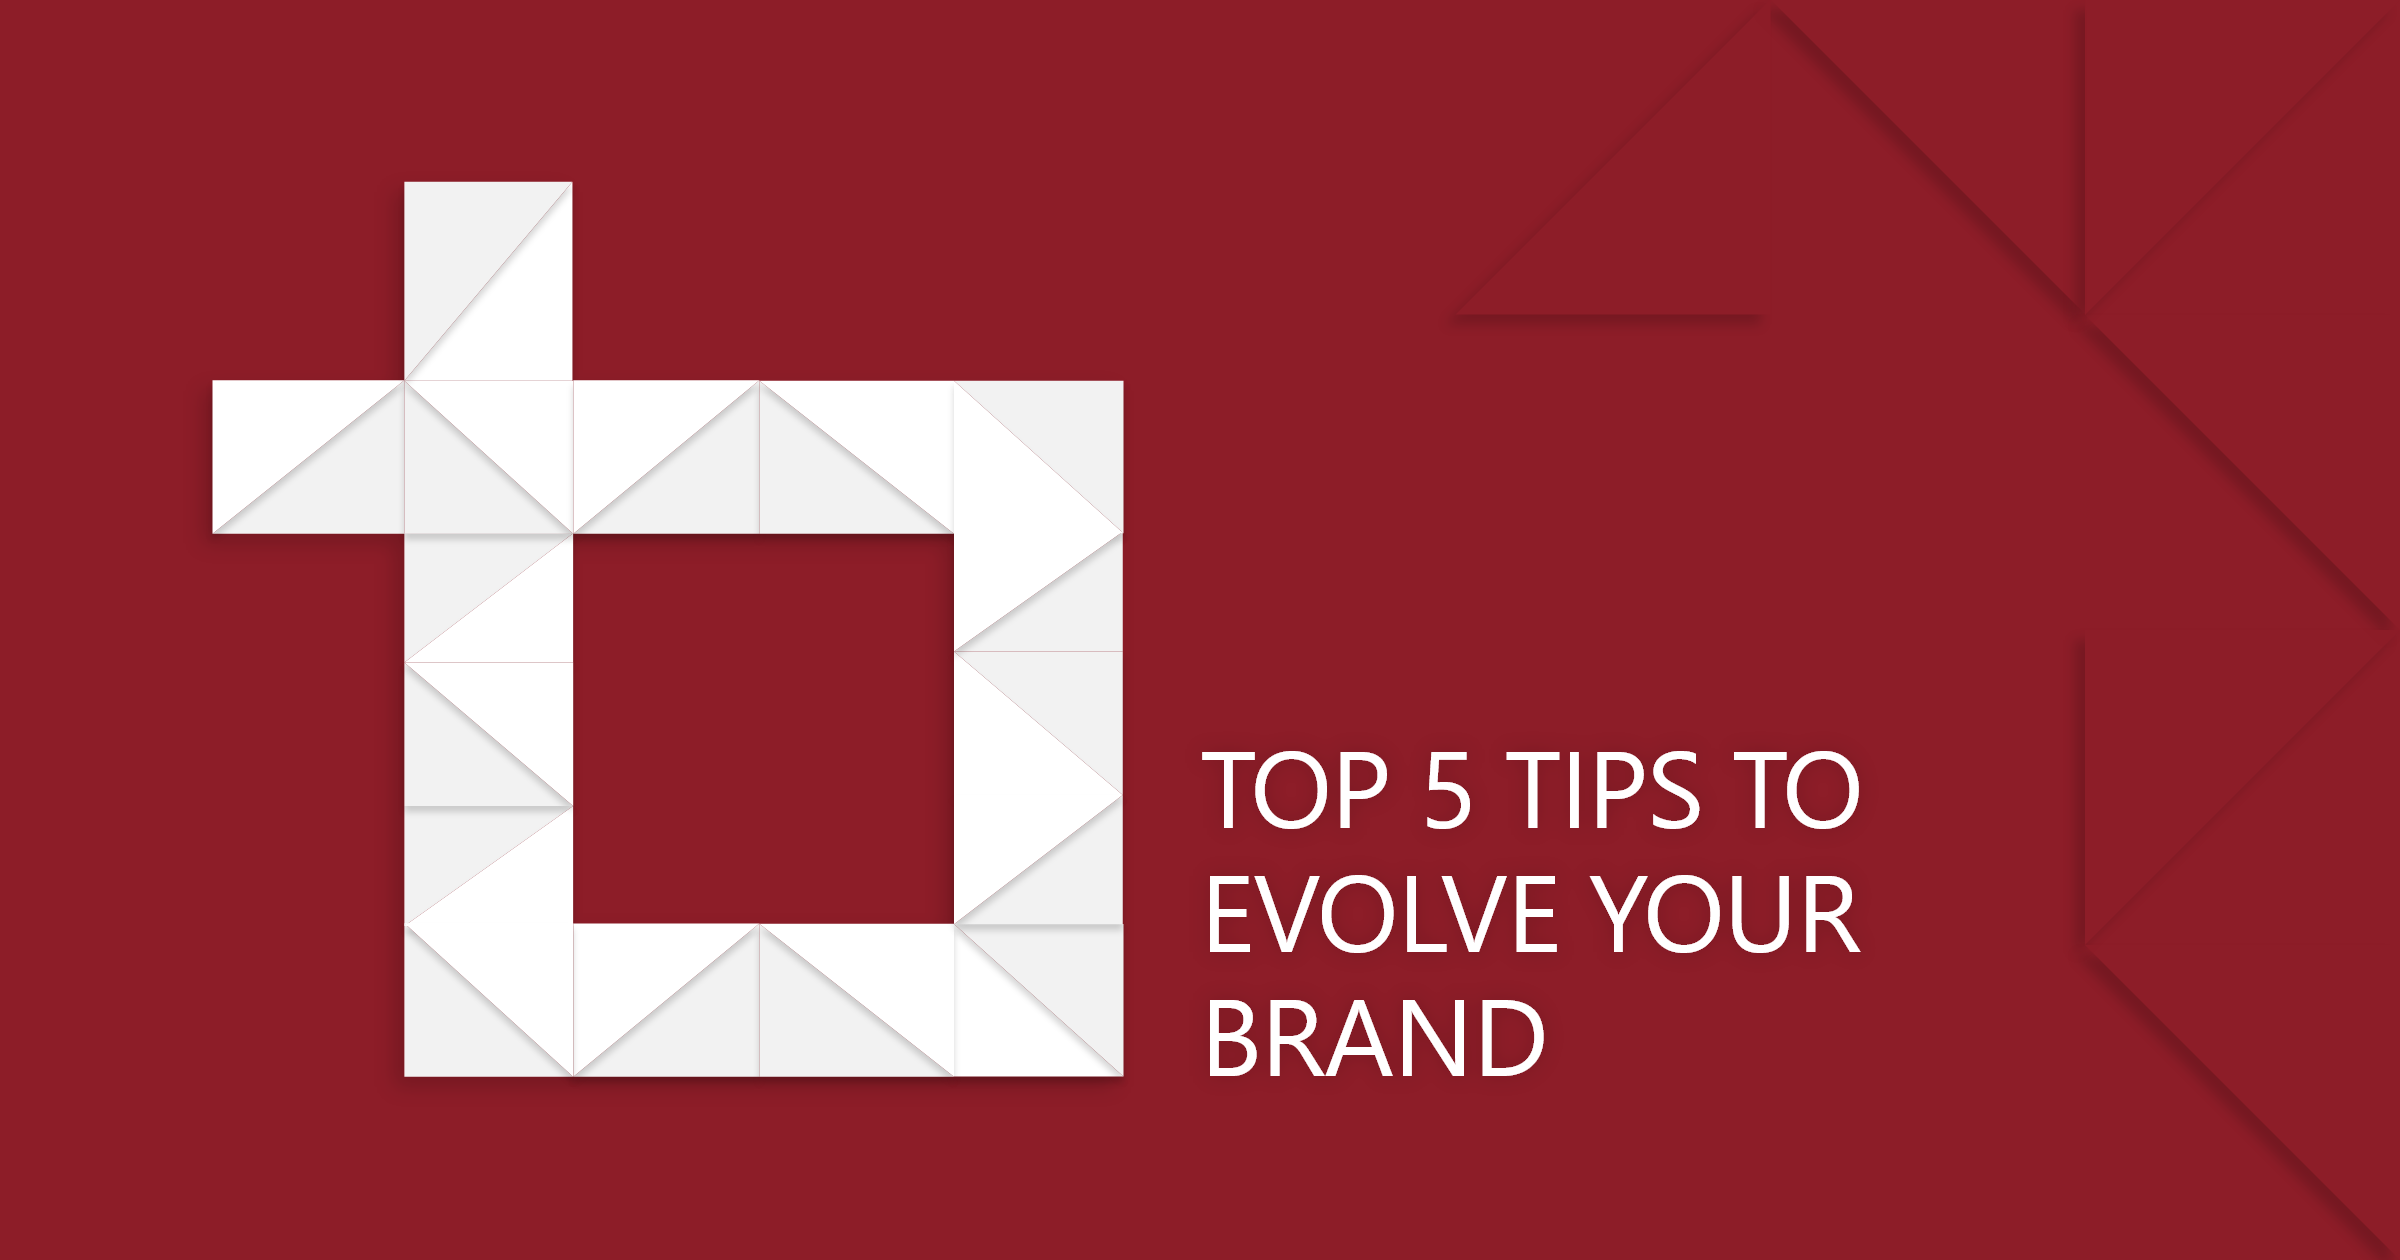 A Brand Evolution, Not A Revolution: Top 5 Tips to Evolve your Brand